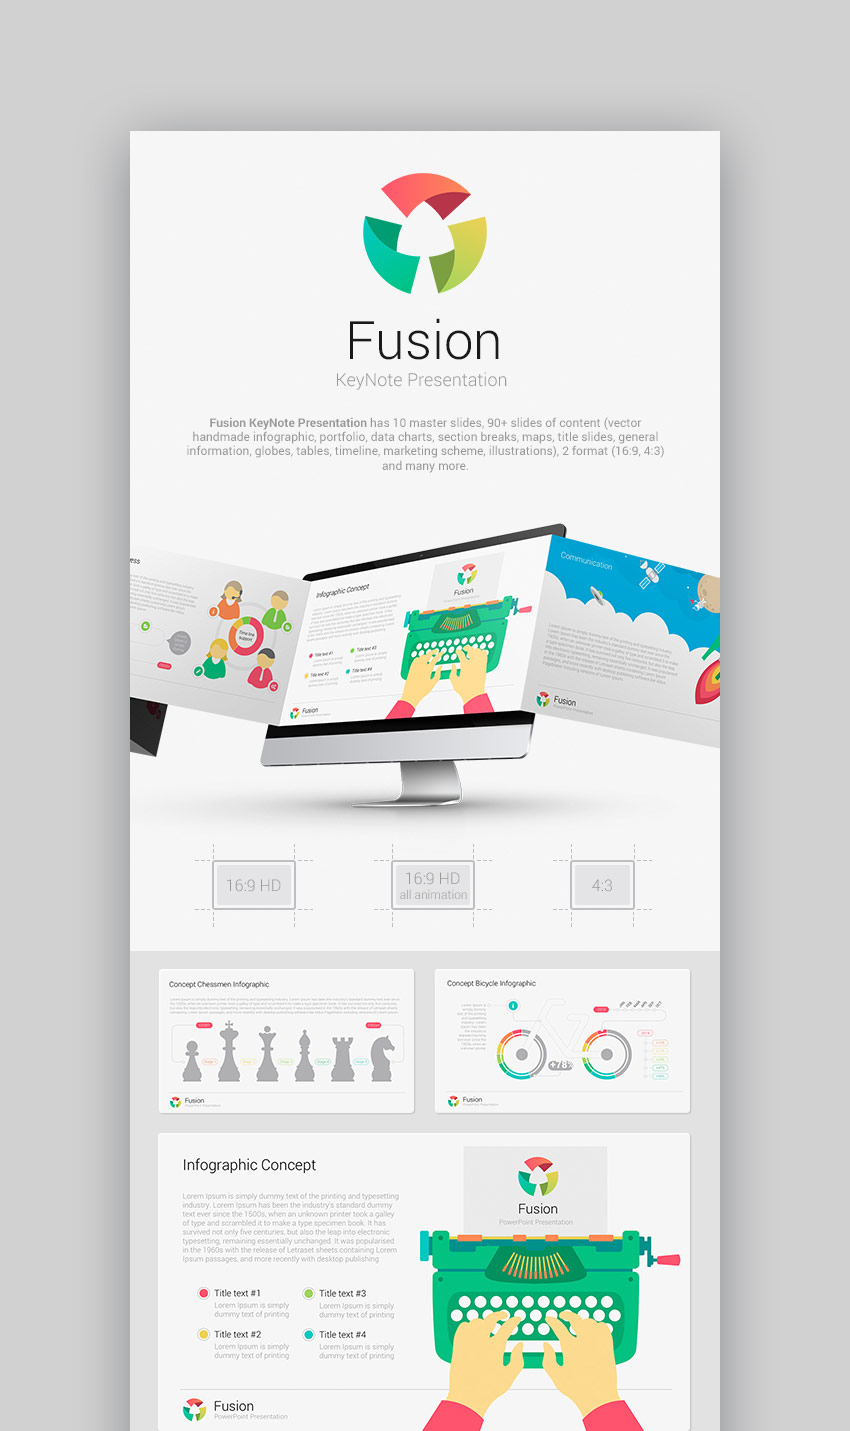 15 best keynote presentation templates for mac users fusion keynote presentation business theme toneelgroepblik Gallery